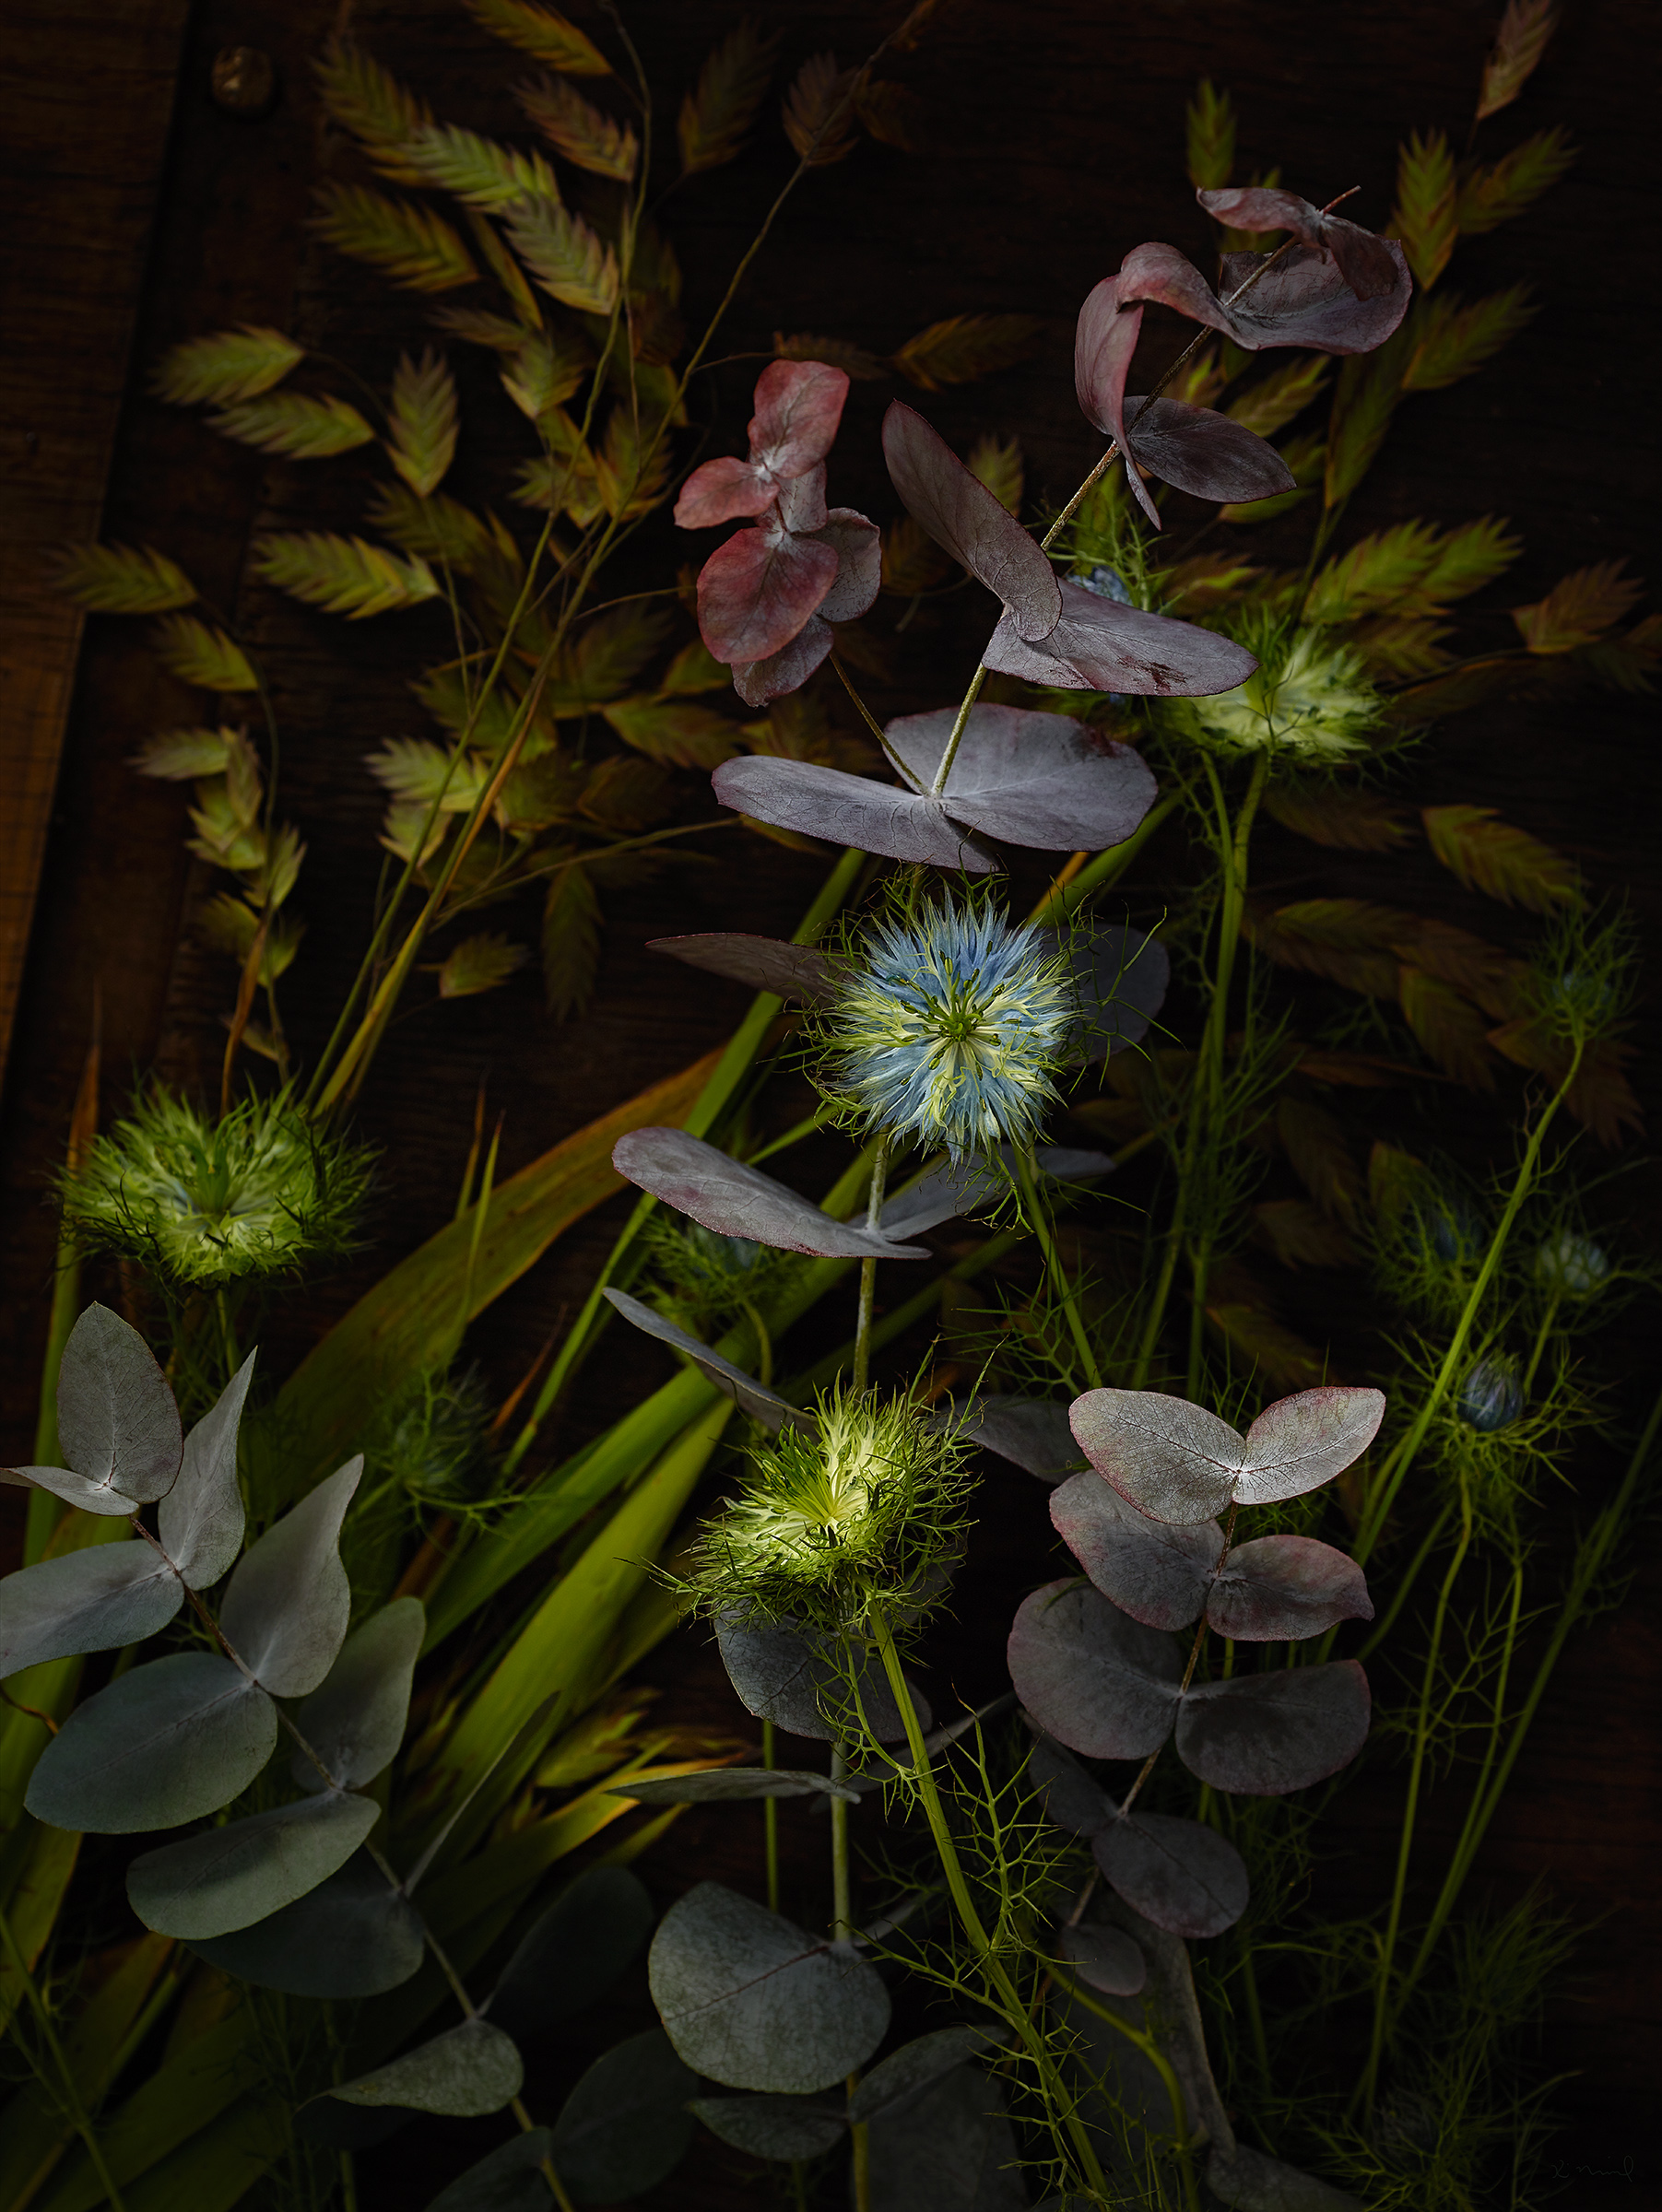 a still life photography from several flowers